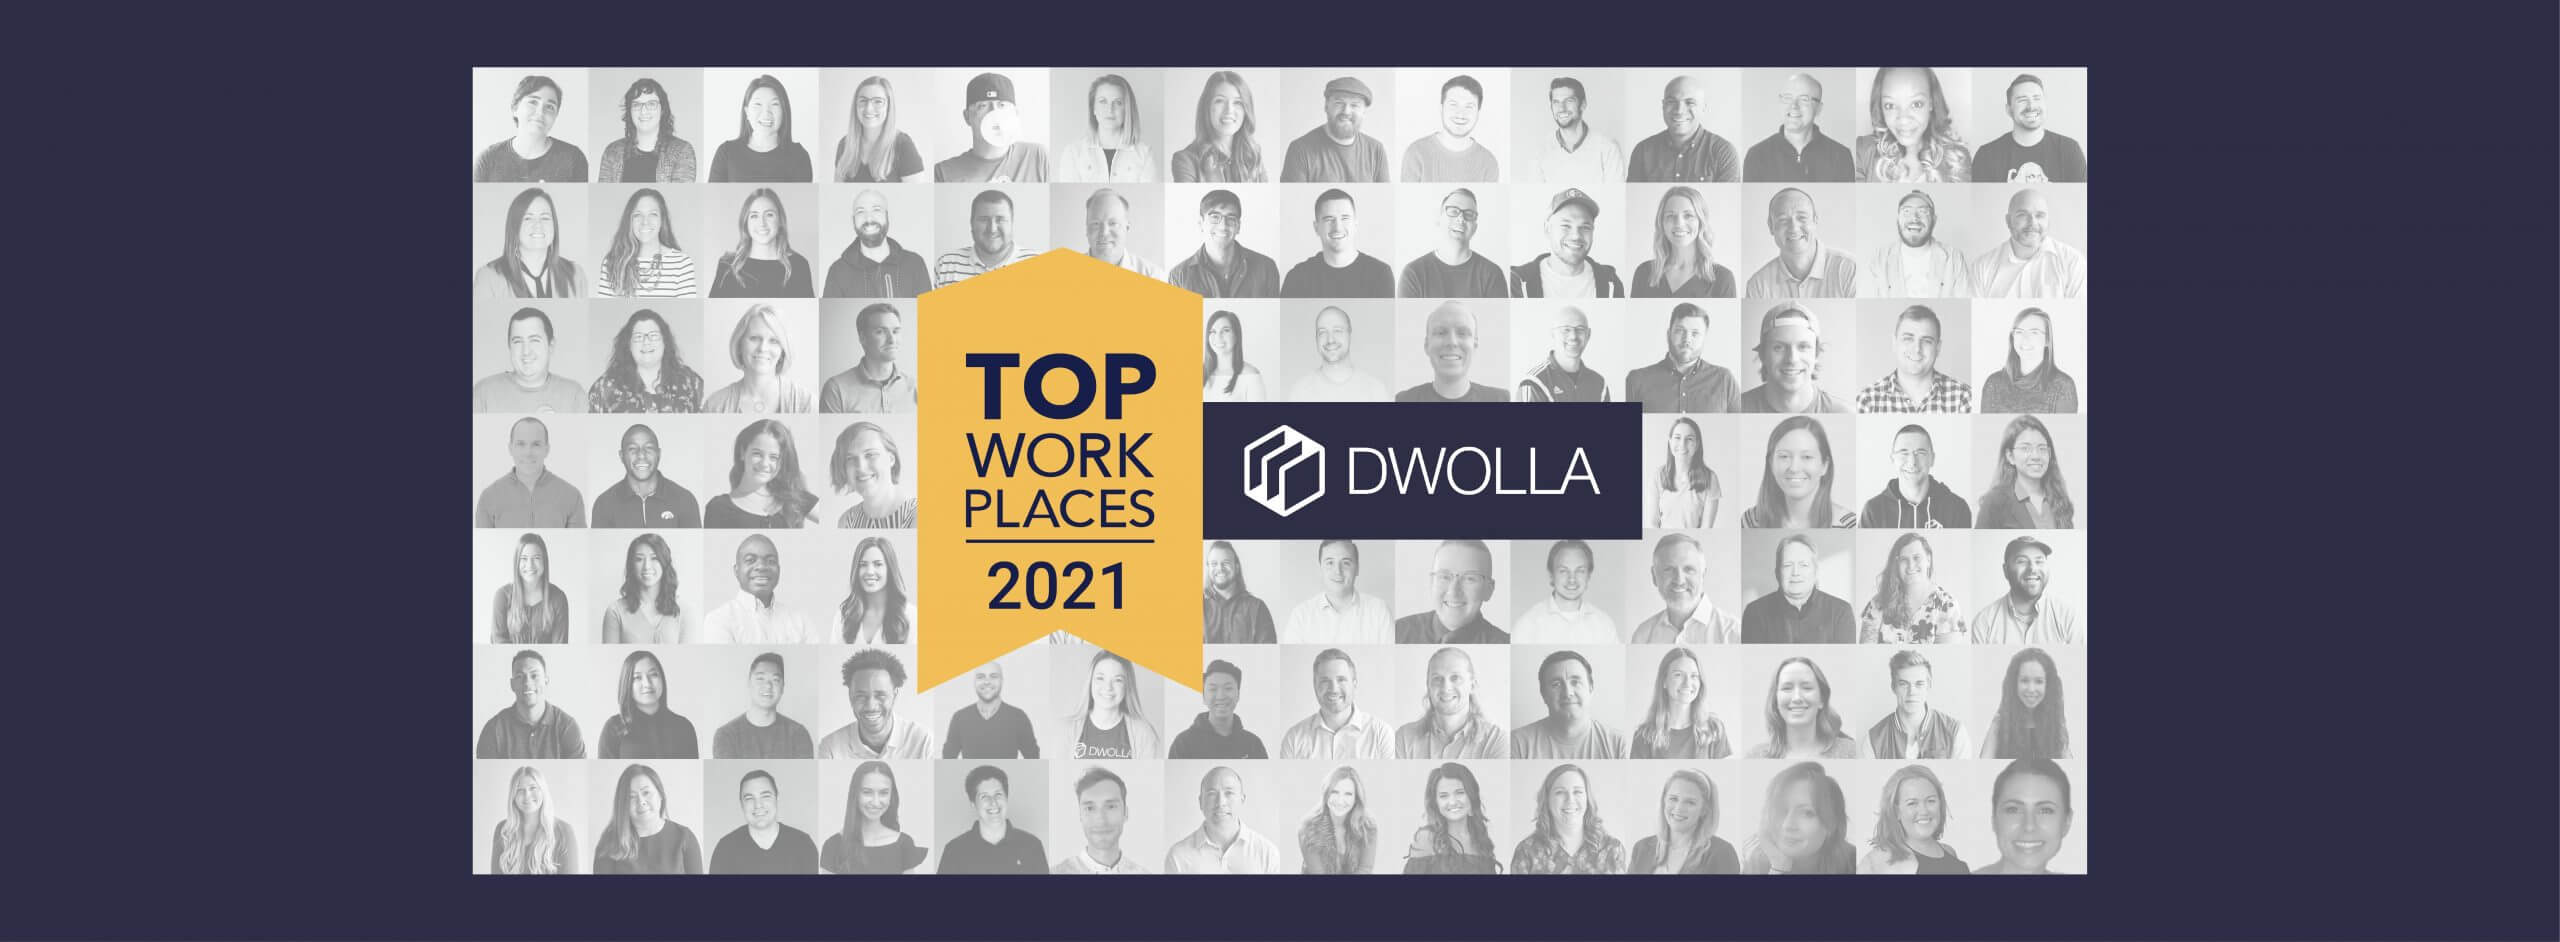 """Banner Image: In the center """"Top Work Places"""" is in a yellow vertical arrow banner with the Dwolla logo to the right. The background is a grid of black and white photos of Dwolla employees."""